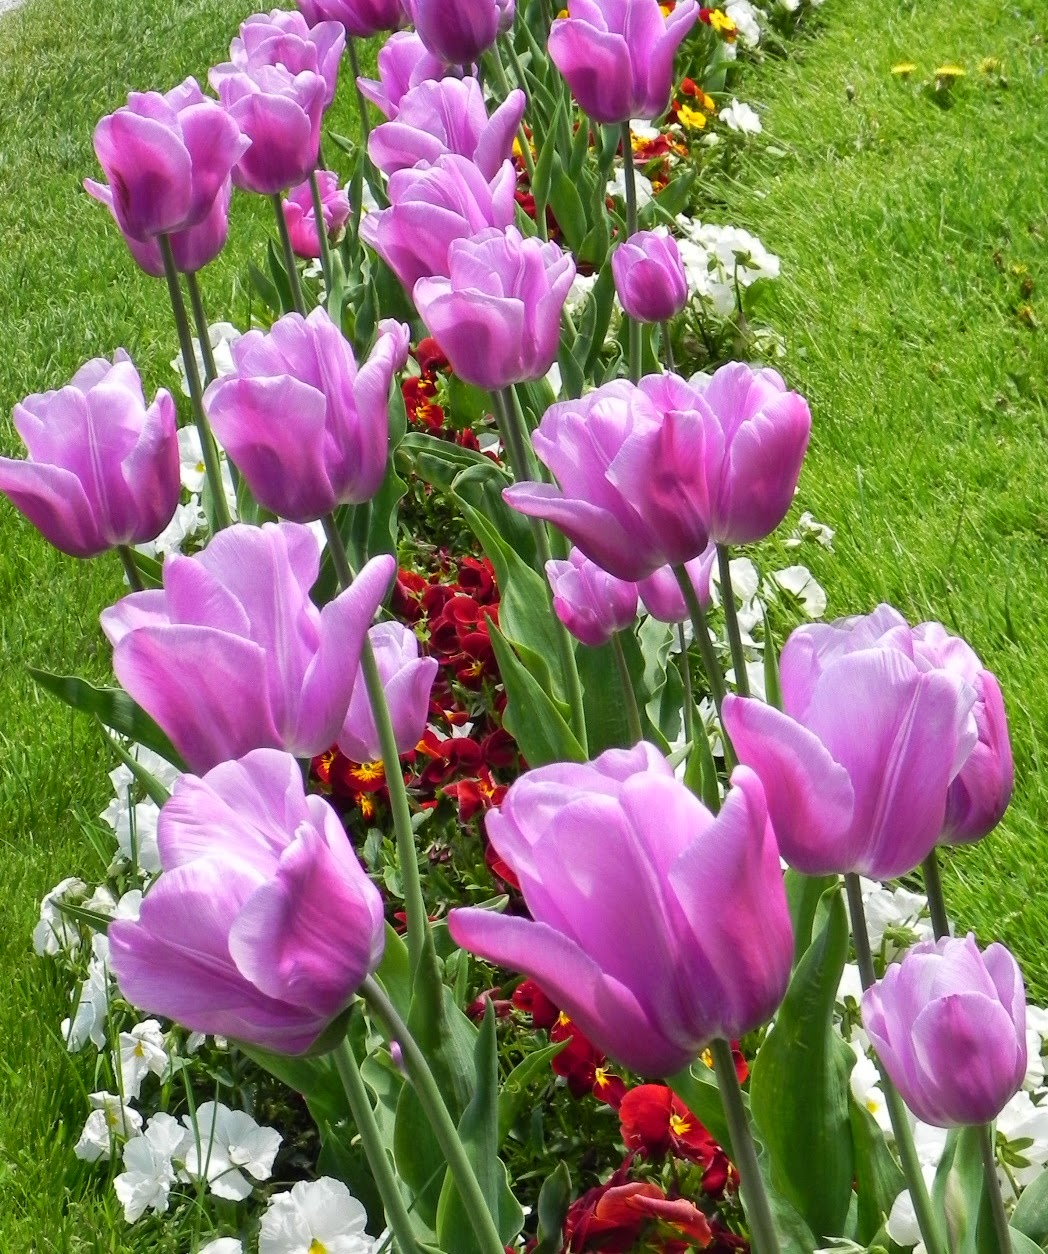 Seindah Tulips....